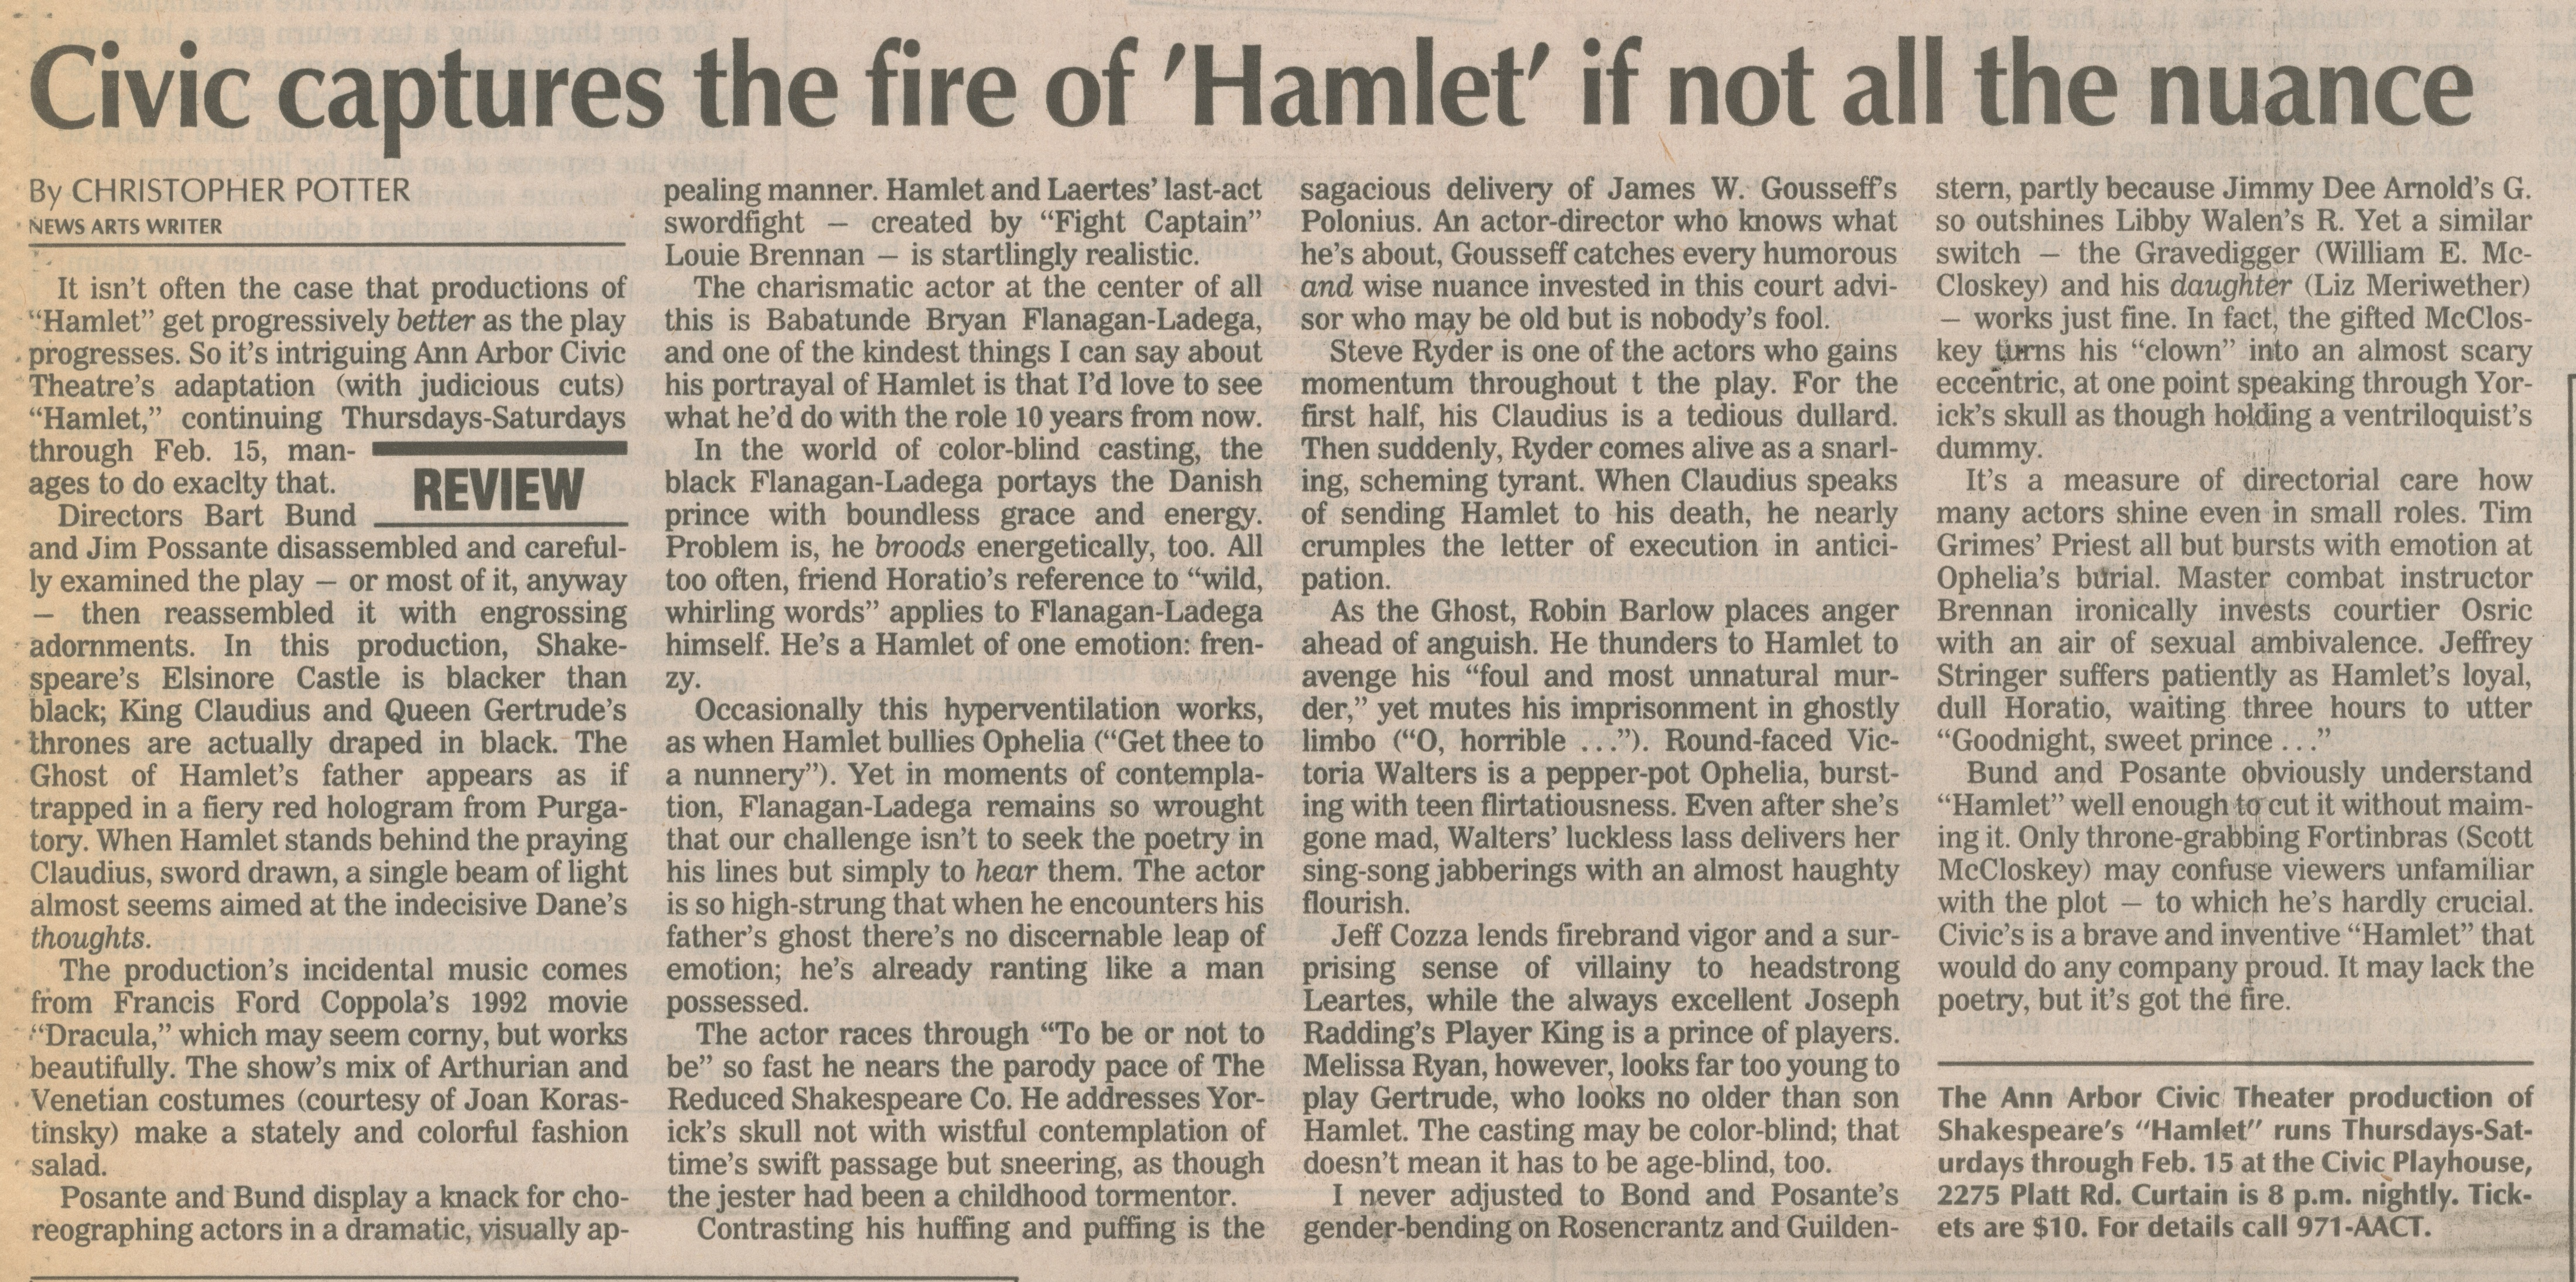 Civic Captures The Fire Of 'Hamlet' If Not All The Nuance image